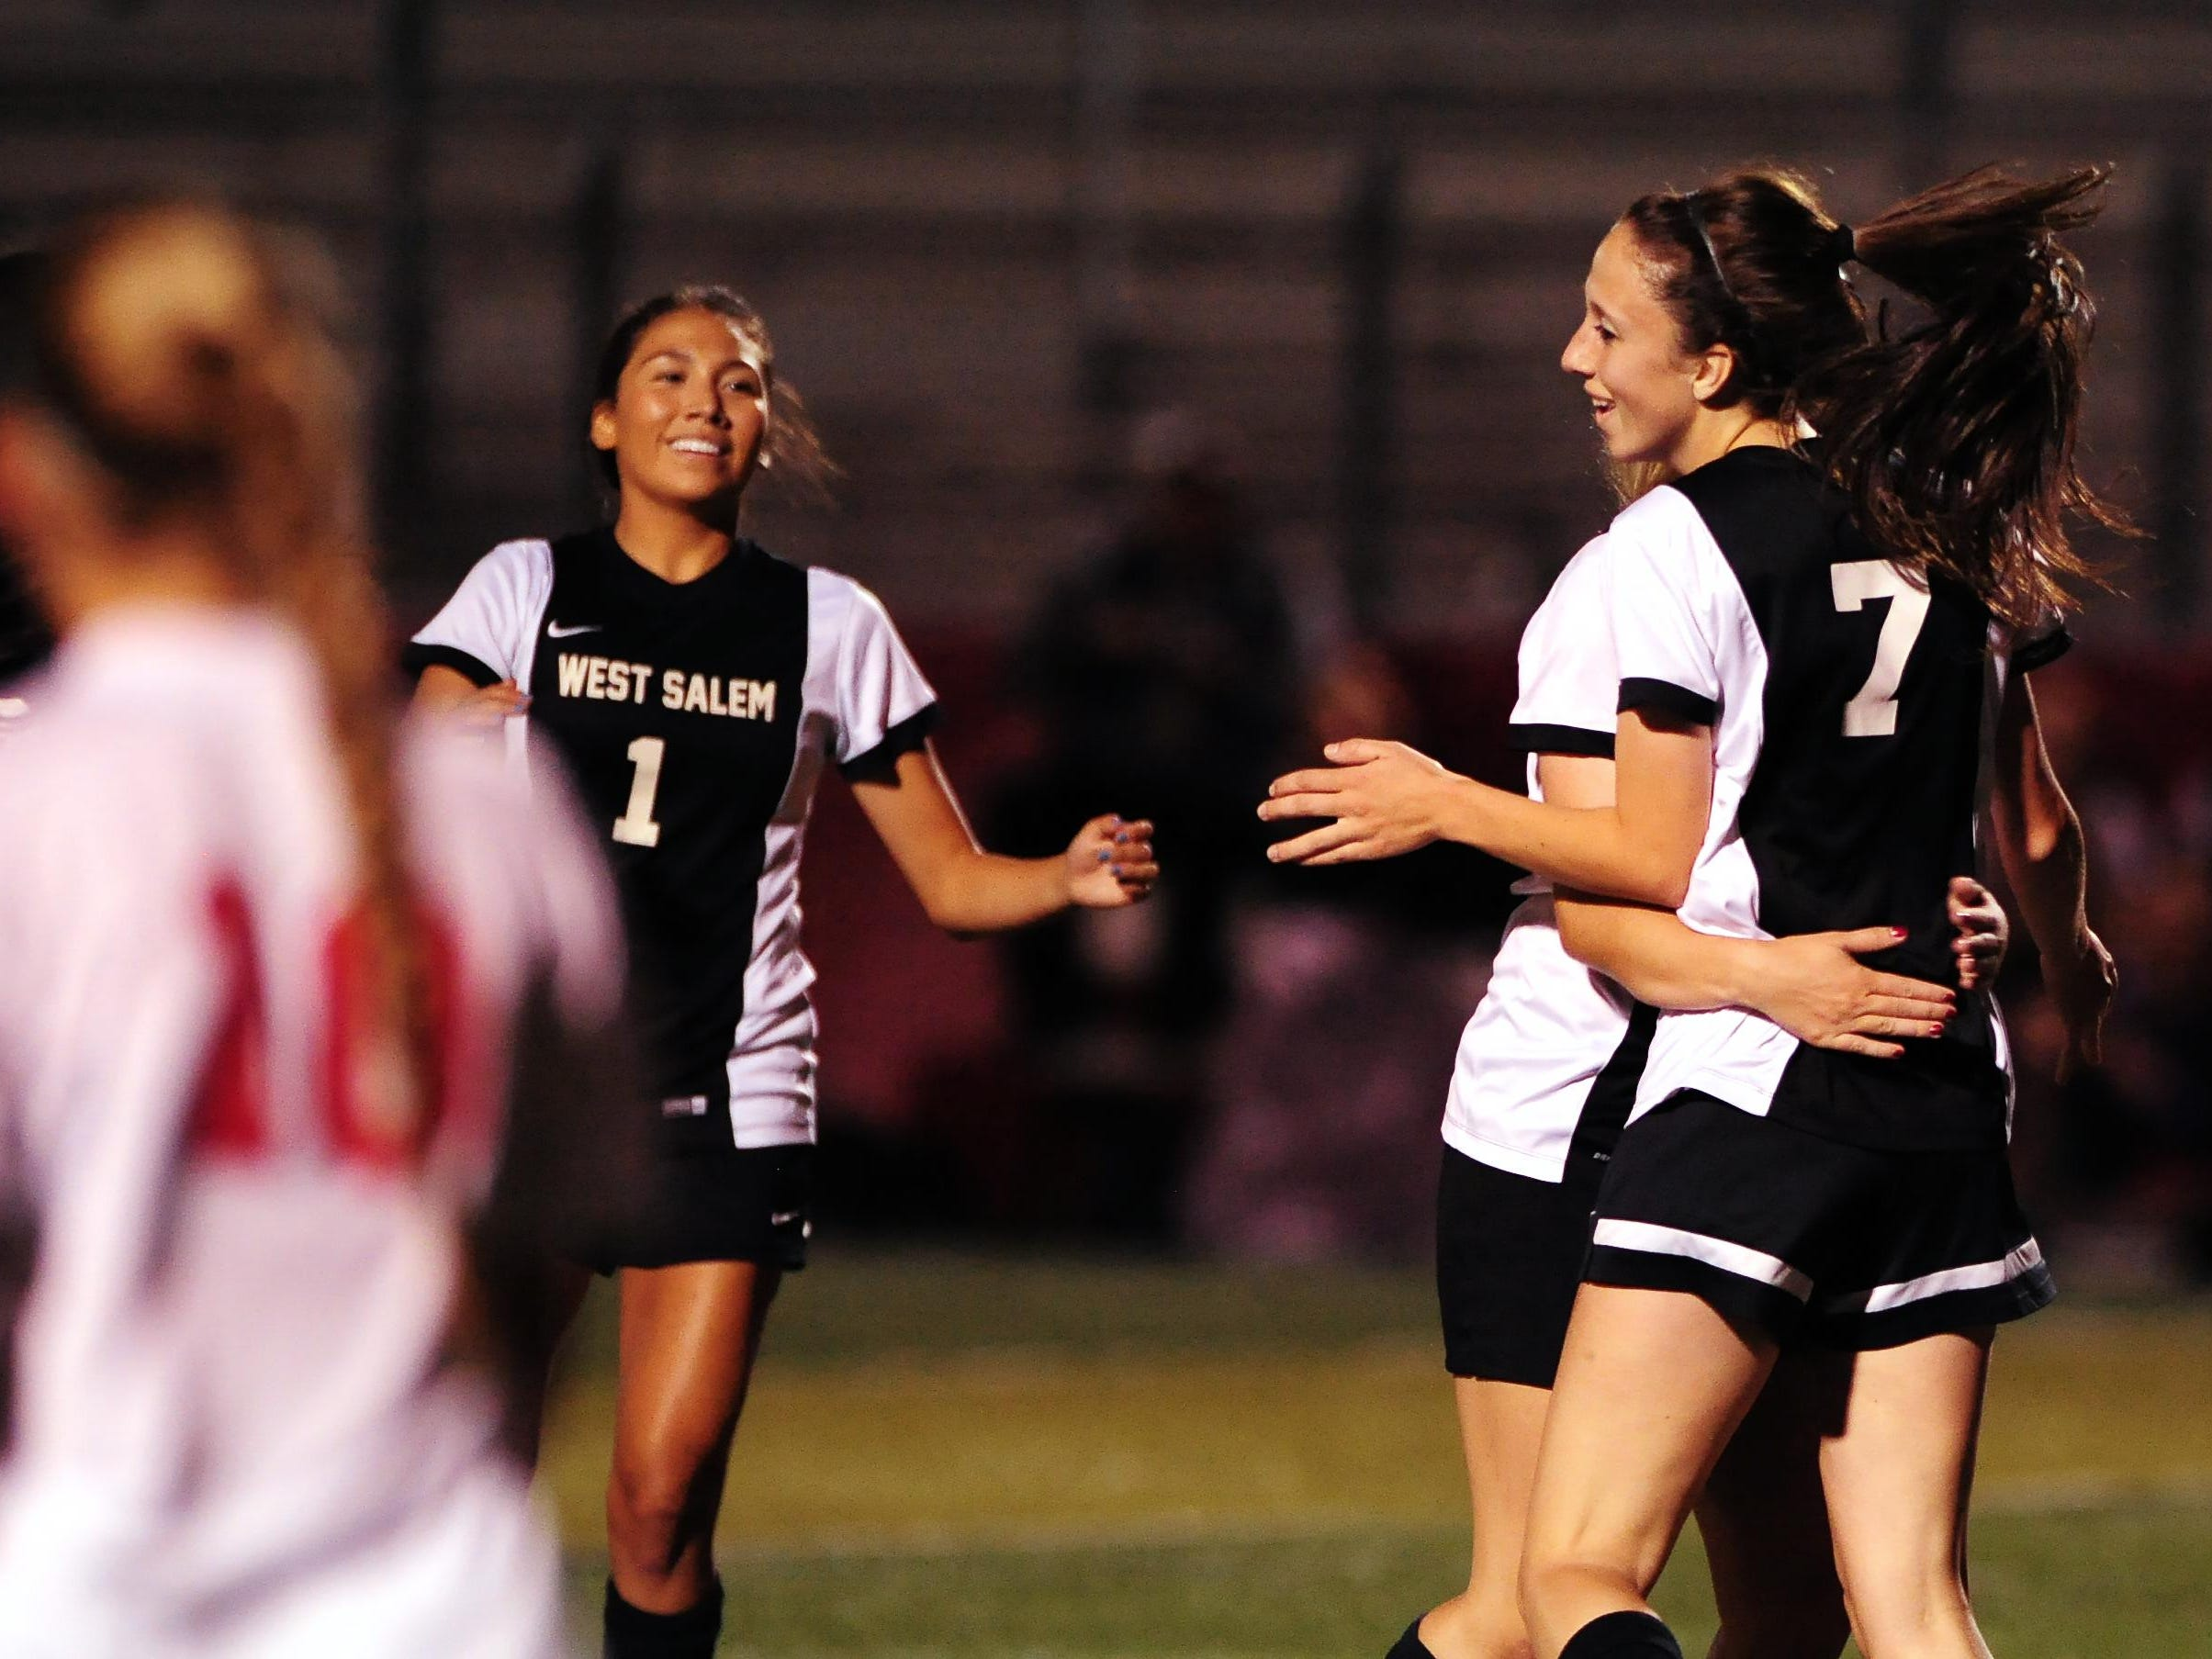 West Salem's Paula-Marie Labate (7) celebrates with teammates after scoring her second goal of the game against South Salem during a Greater Valley Conference game, Wednesday, Oct. 6, 2015, in Salem, Ore.